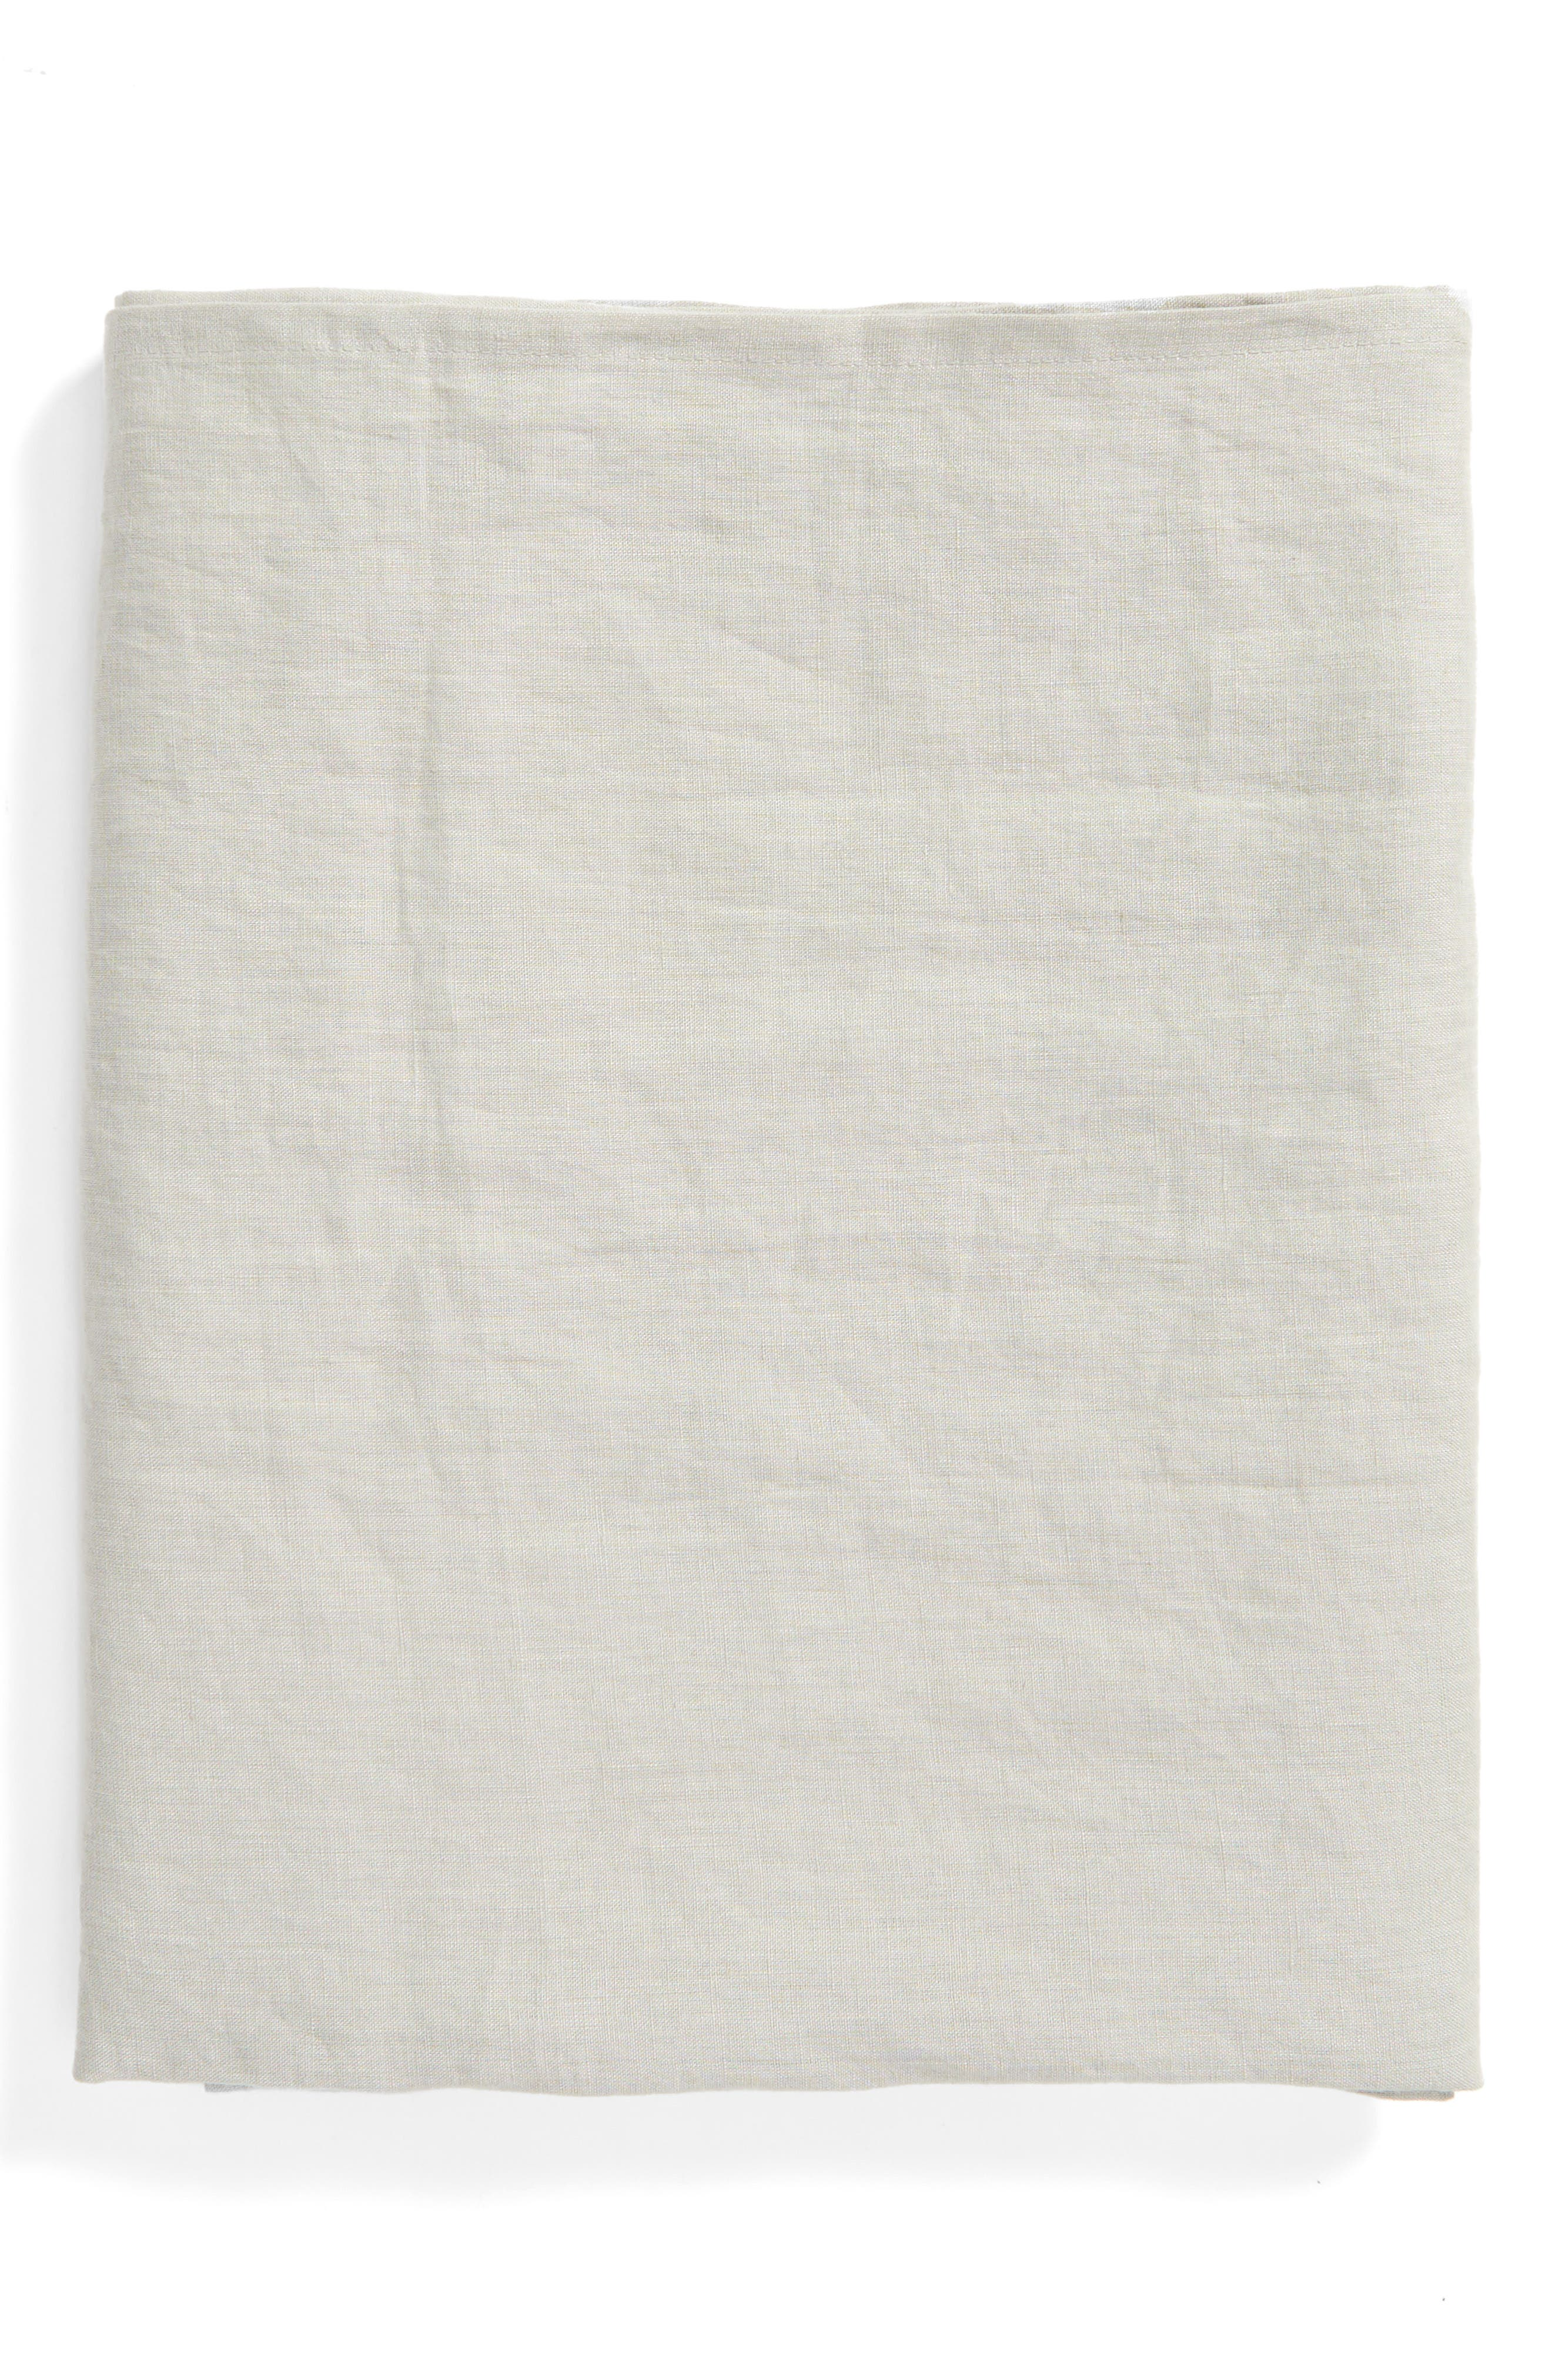 Main Image - Levtex Washed Linen Tablecloth